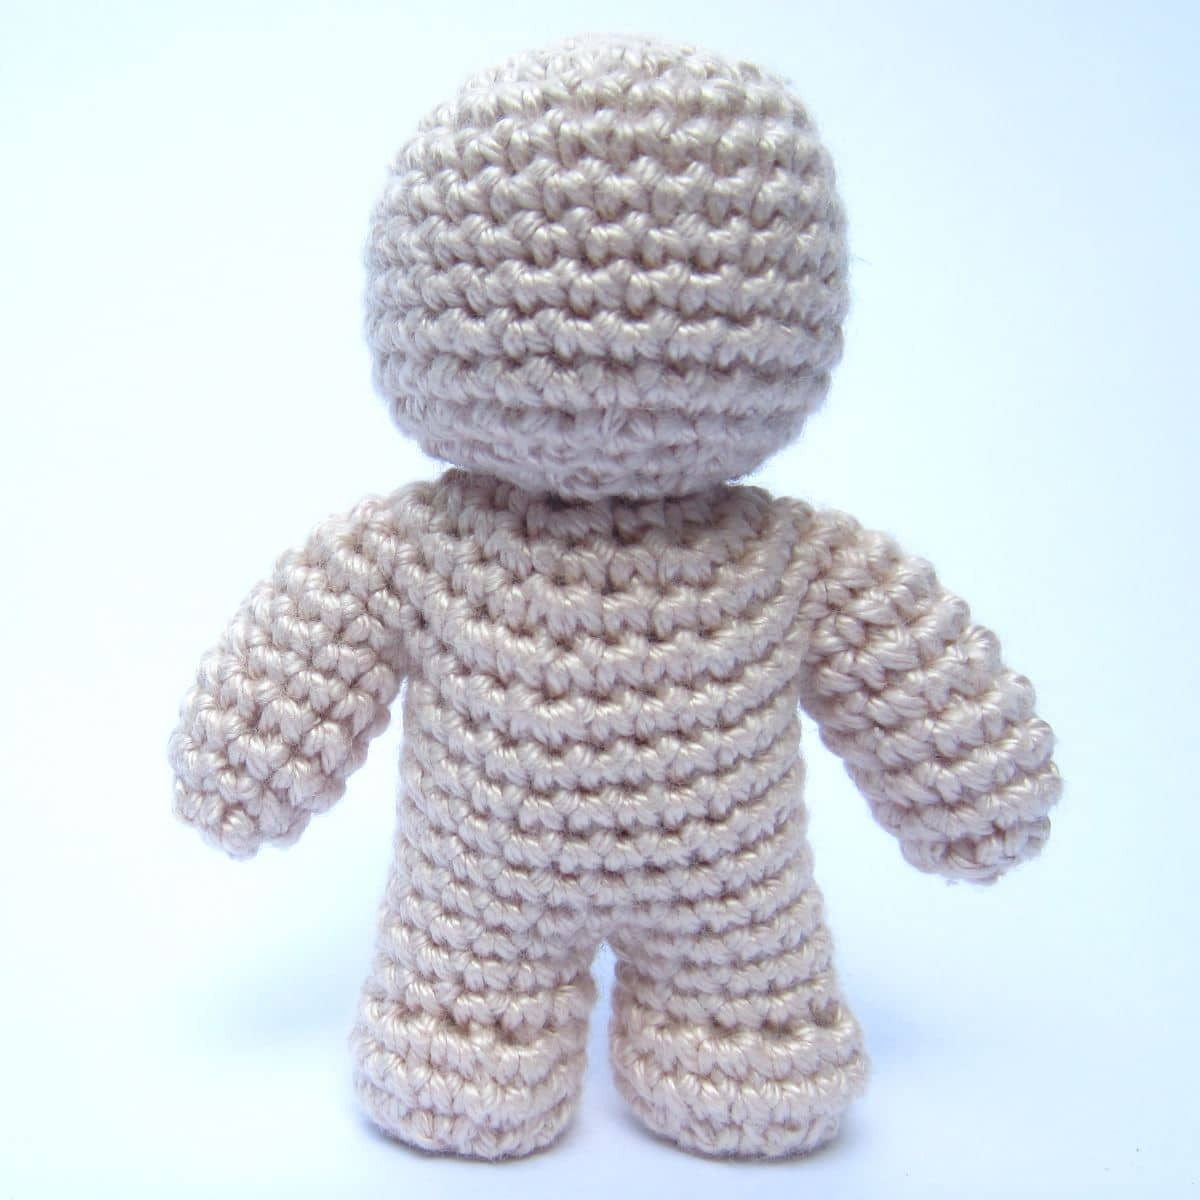 Doll Patterns Unique E Piece Crochet Doll Pattern Supergurumi Of Doll Patterns Luxury Dolls Patterns Free Free Patterns